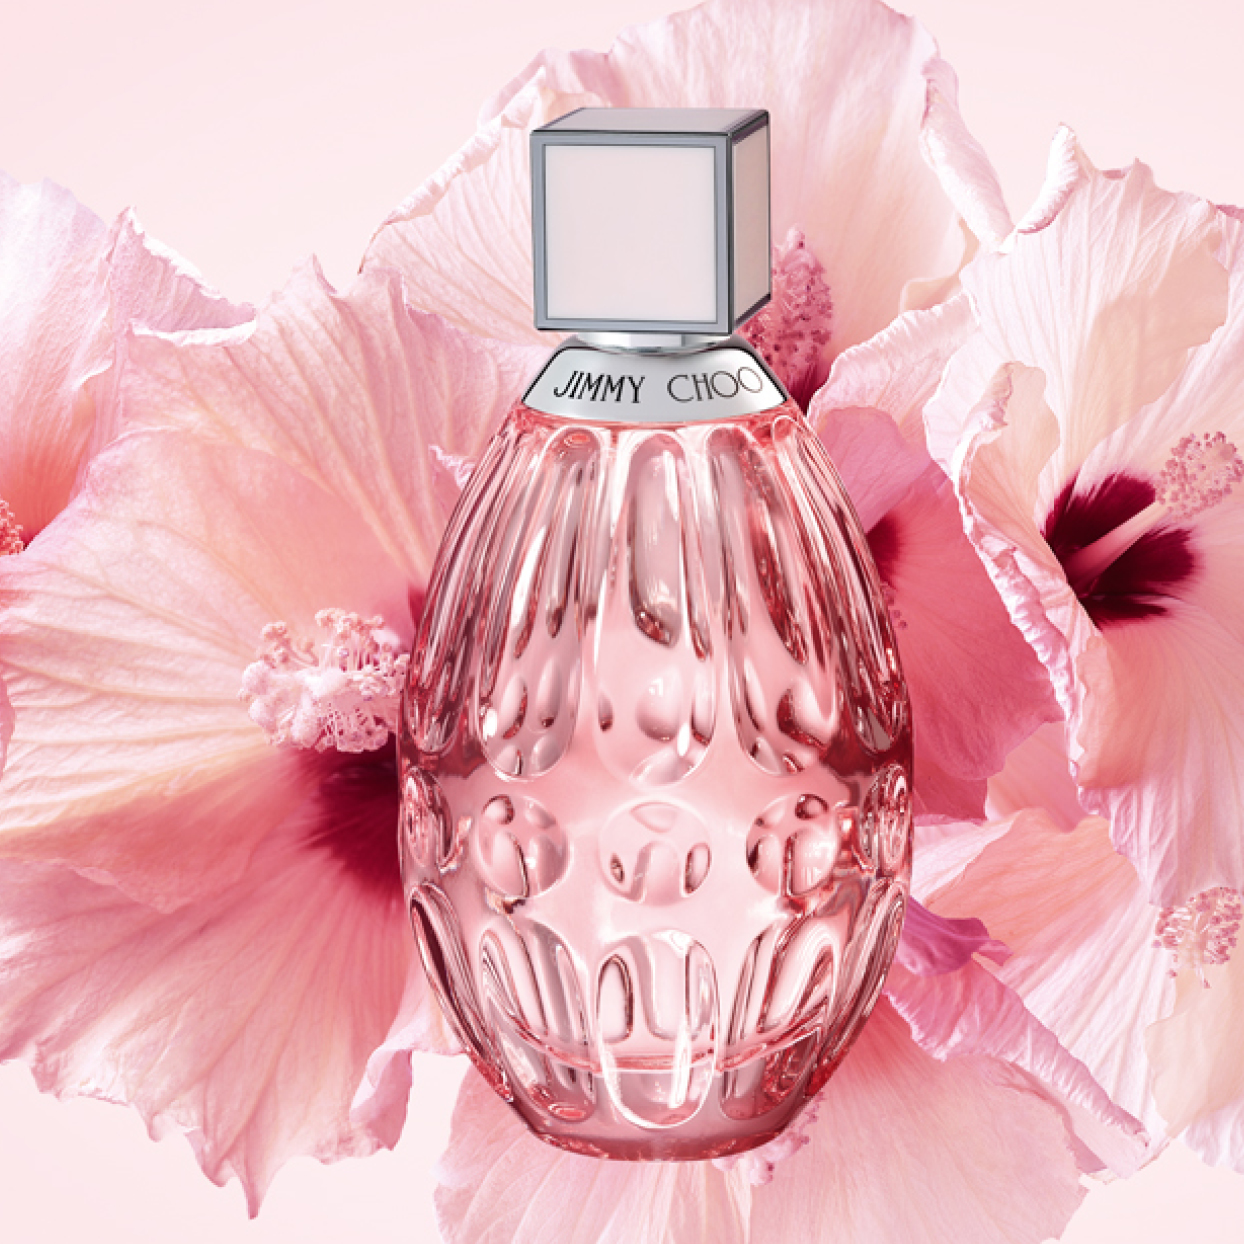 jimmy choo leau - Jimmy Choo L'Eau